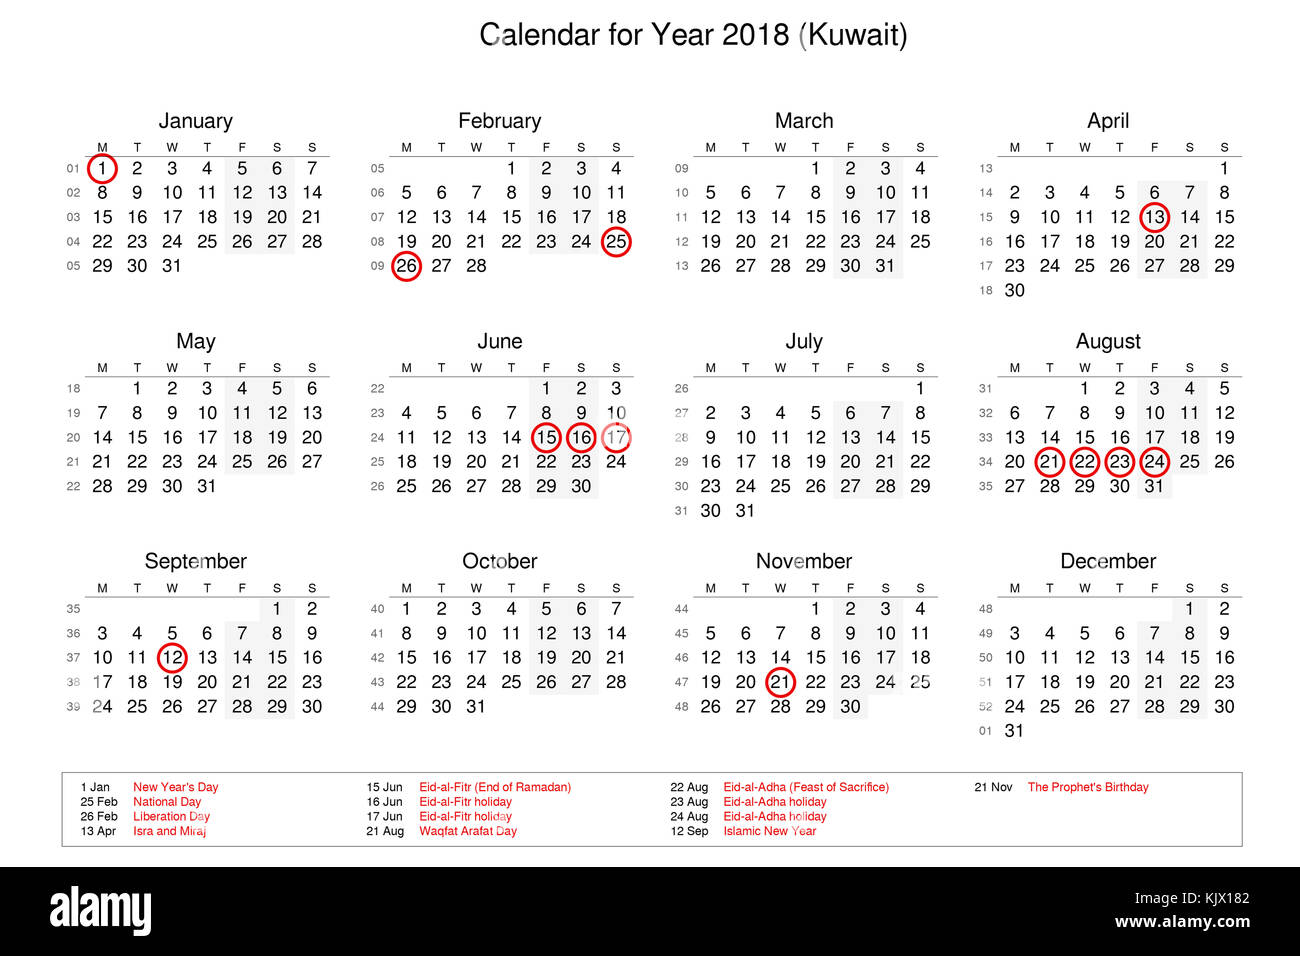 calendar of year 2018 with public holidays and bank holidays for kuwait